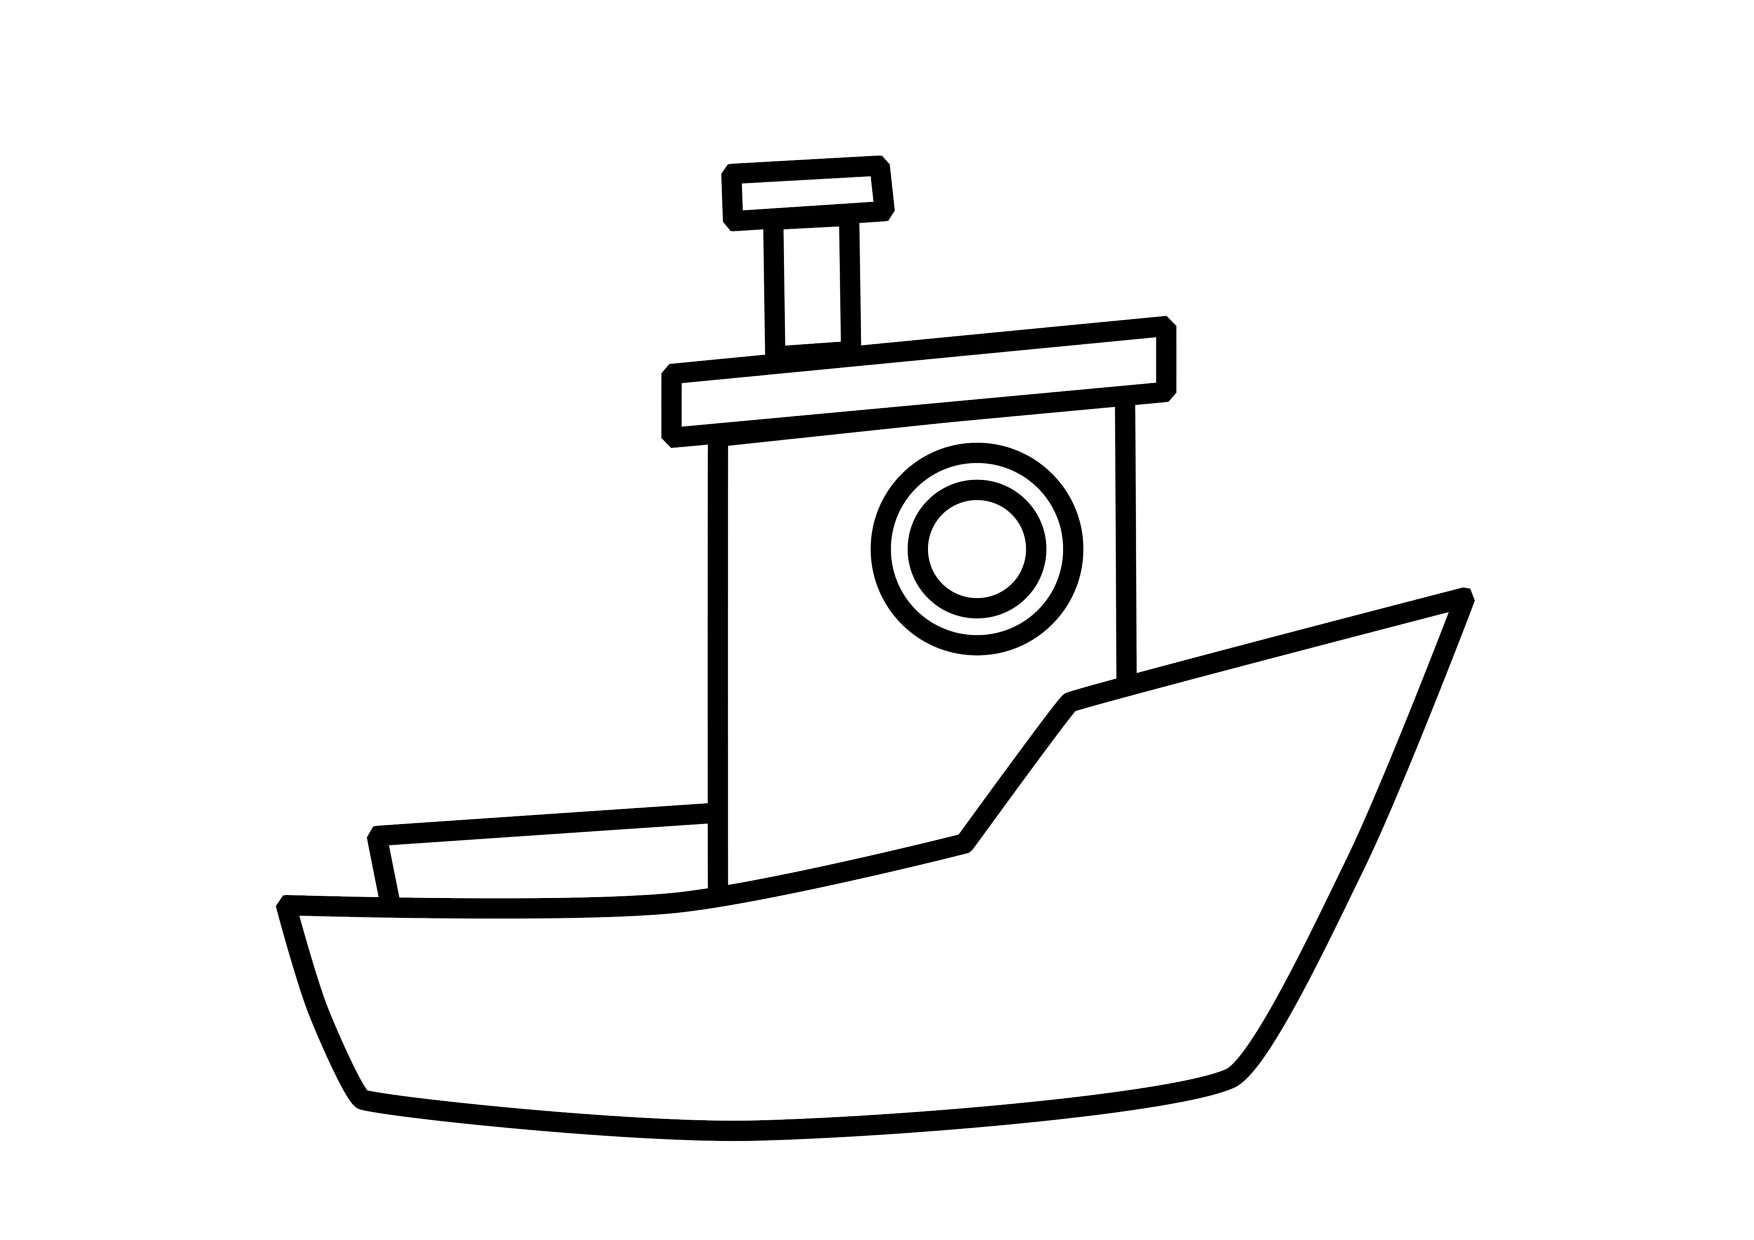 coloring boat for kids boat coloring pages to download and print for free kids boat for coloring